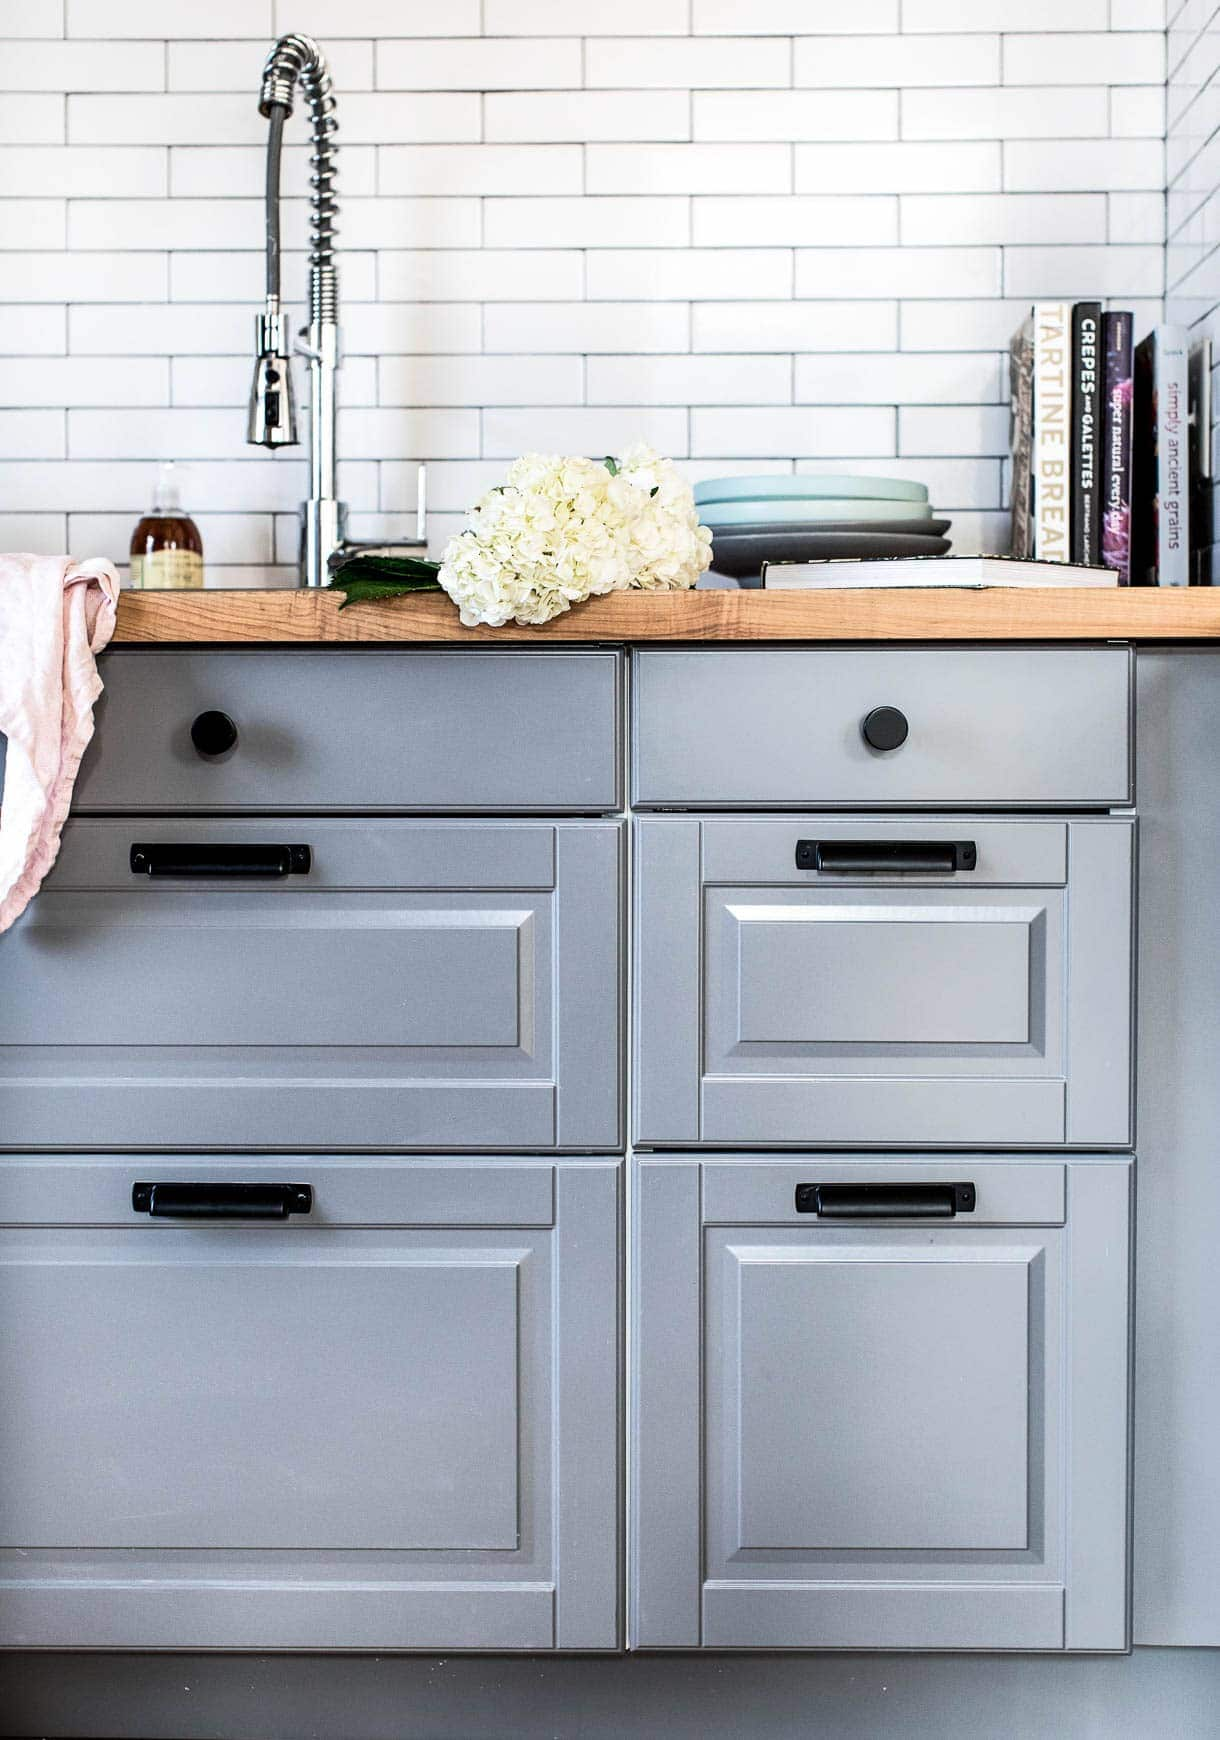 ikea cabinets with butcherblock countertops